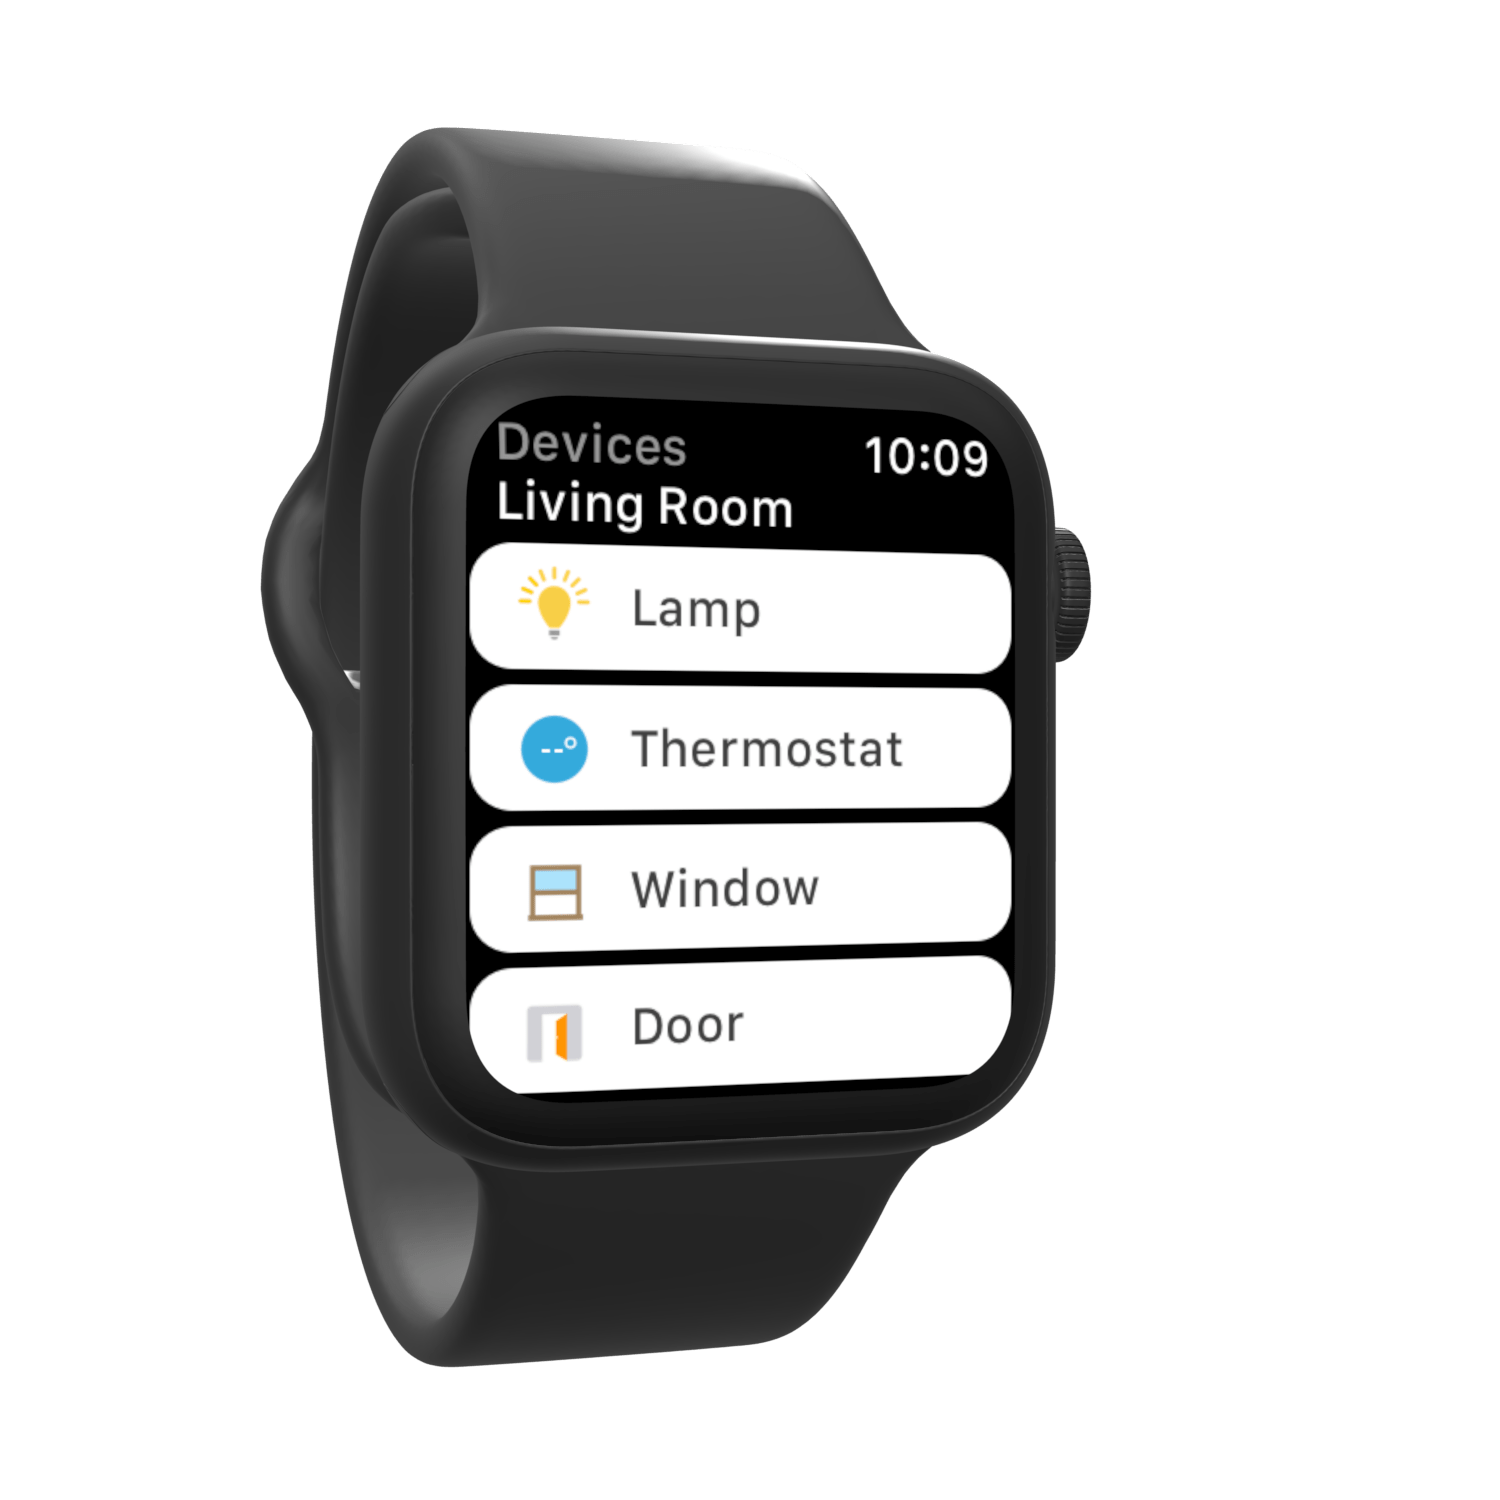 Devices App Apple Watch